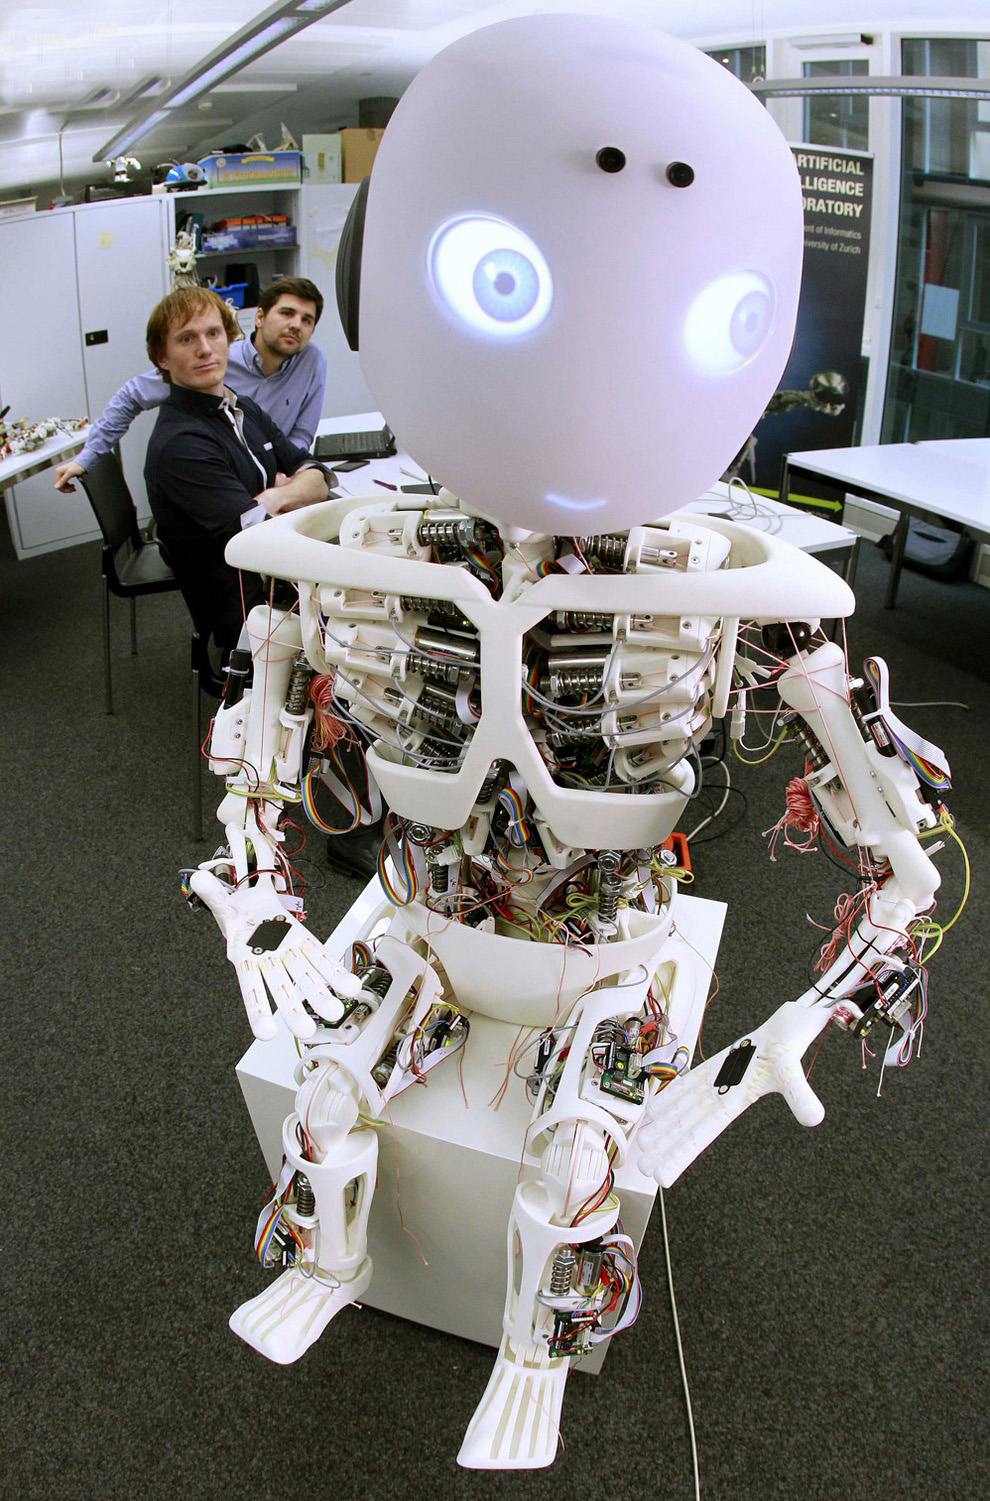 Engineers Dominik Brumm and Serge Weydert, gives commands to the robot